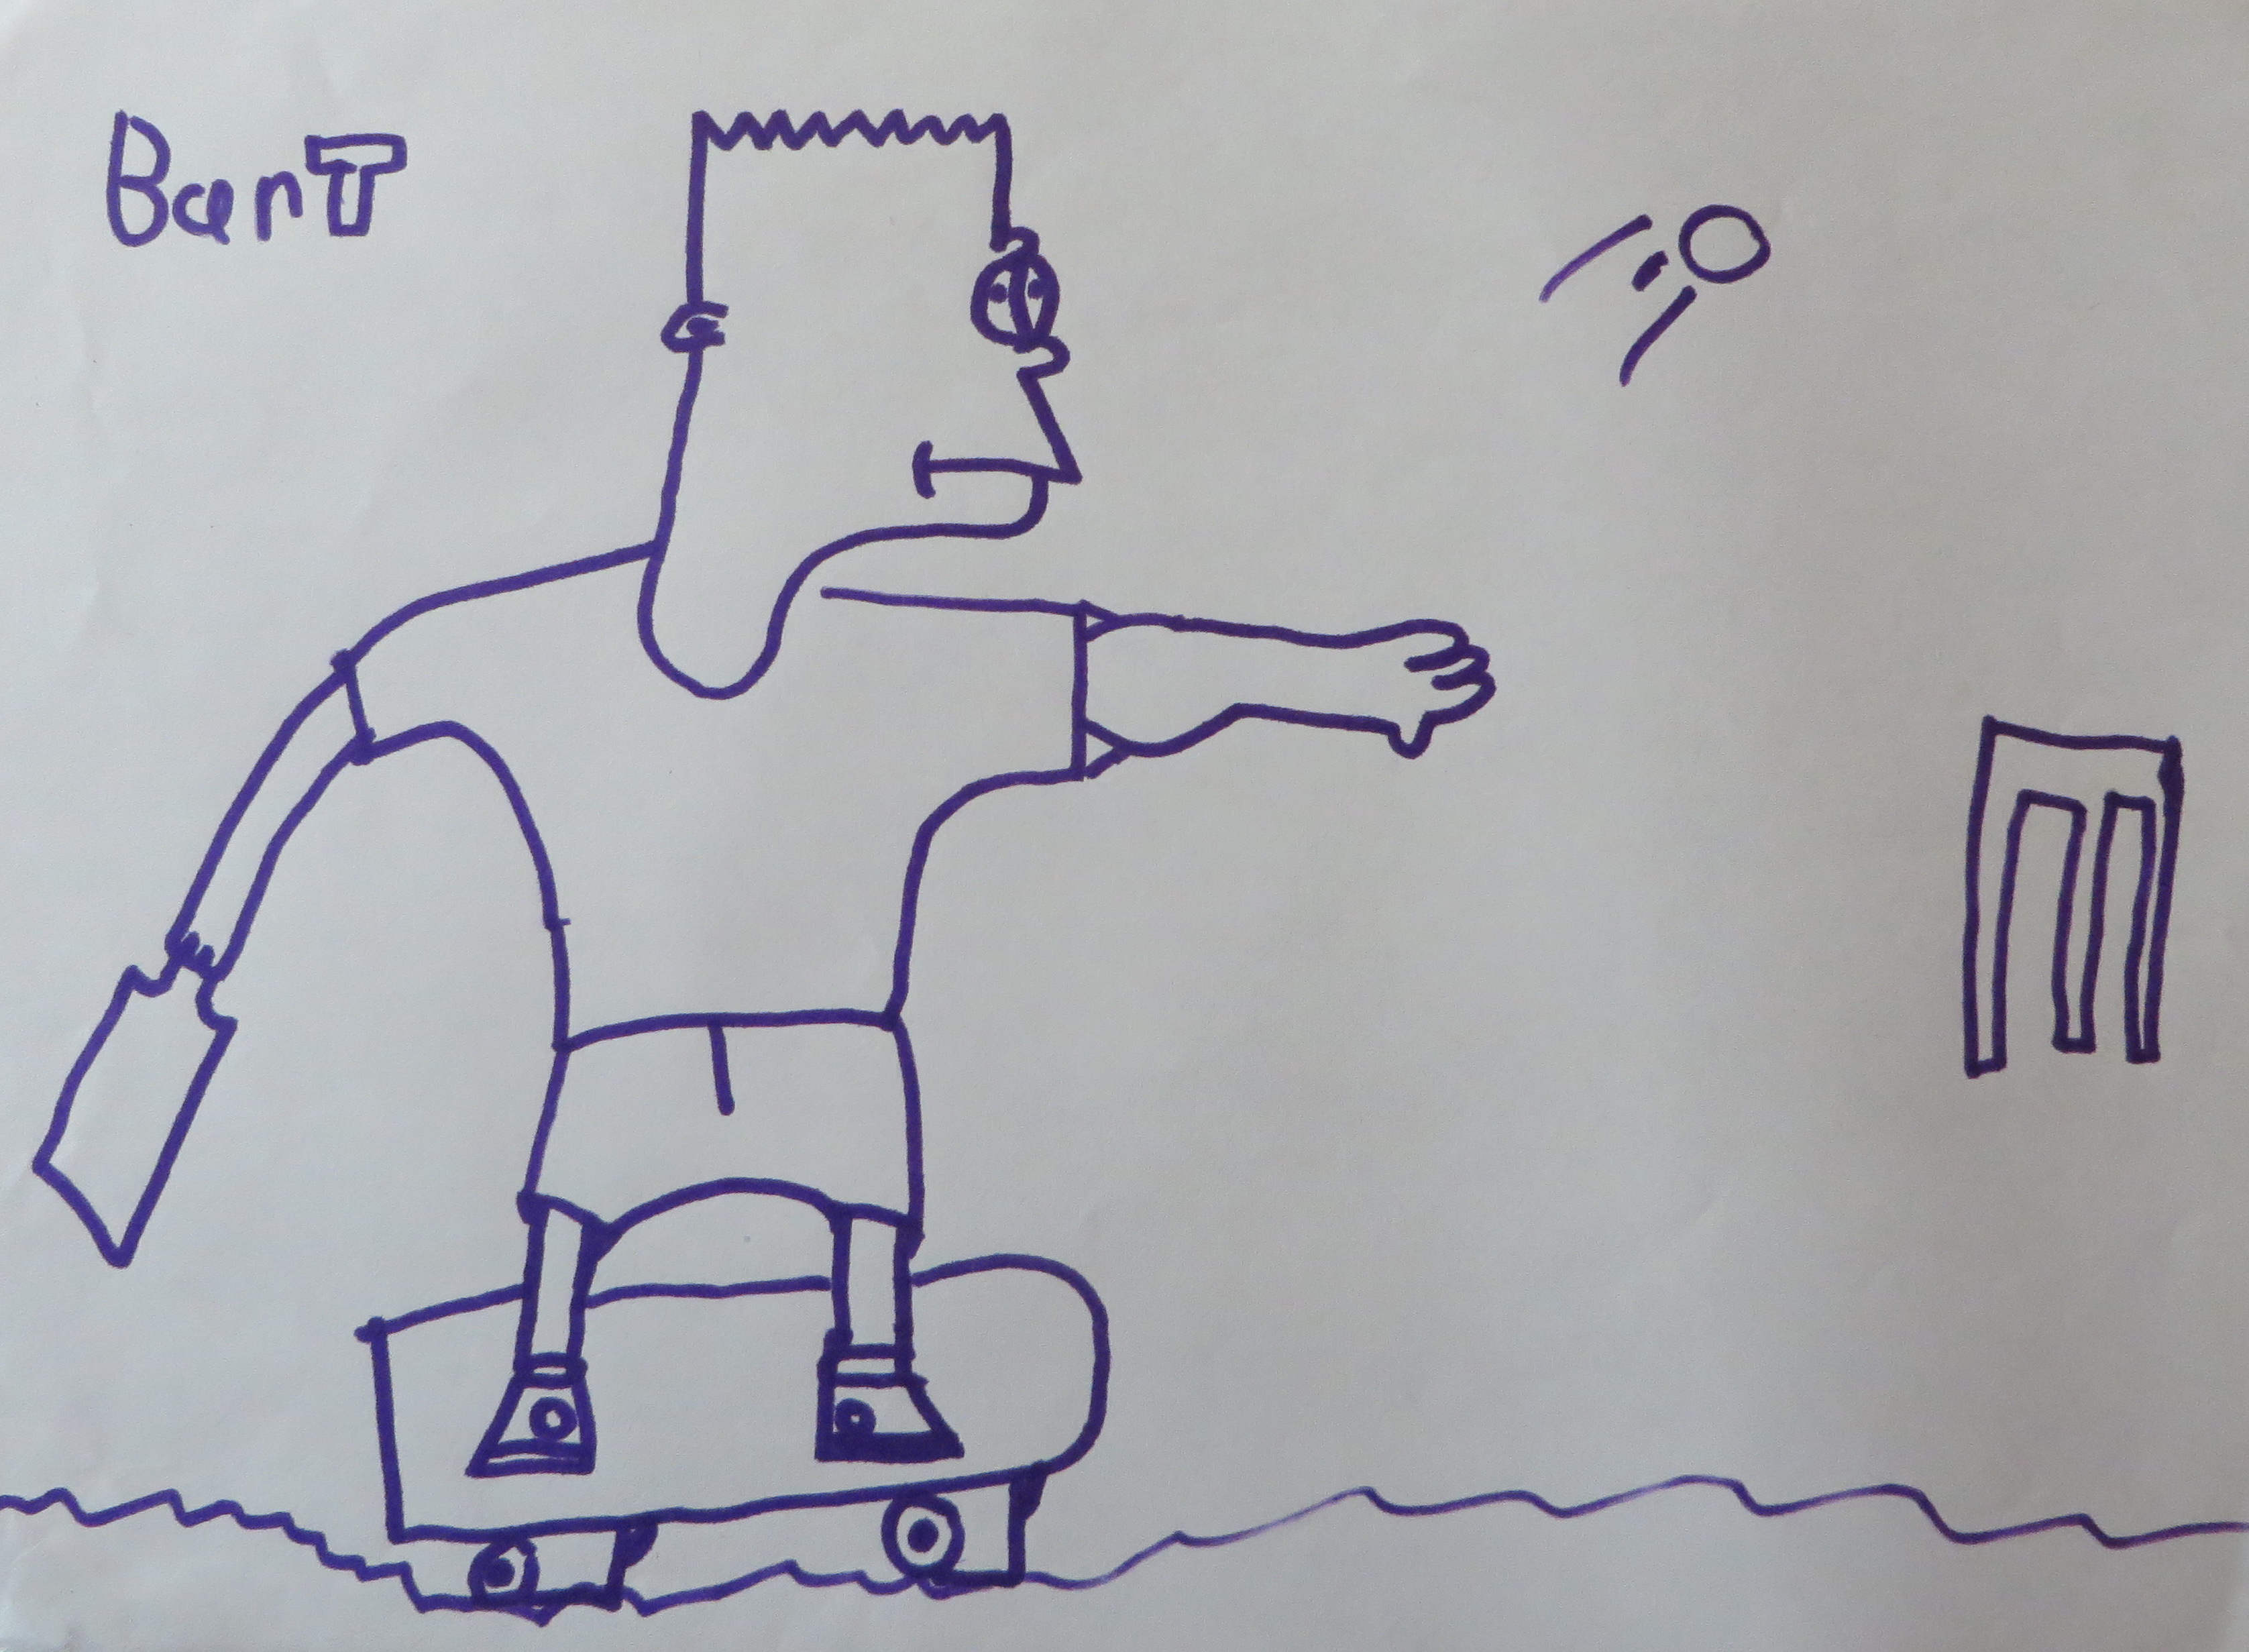 Missing image of Bart Simpson on his skateboard